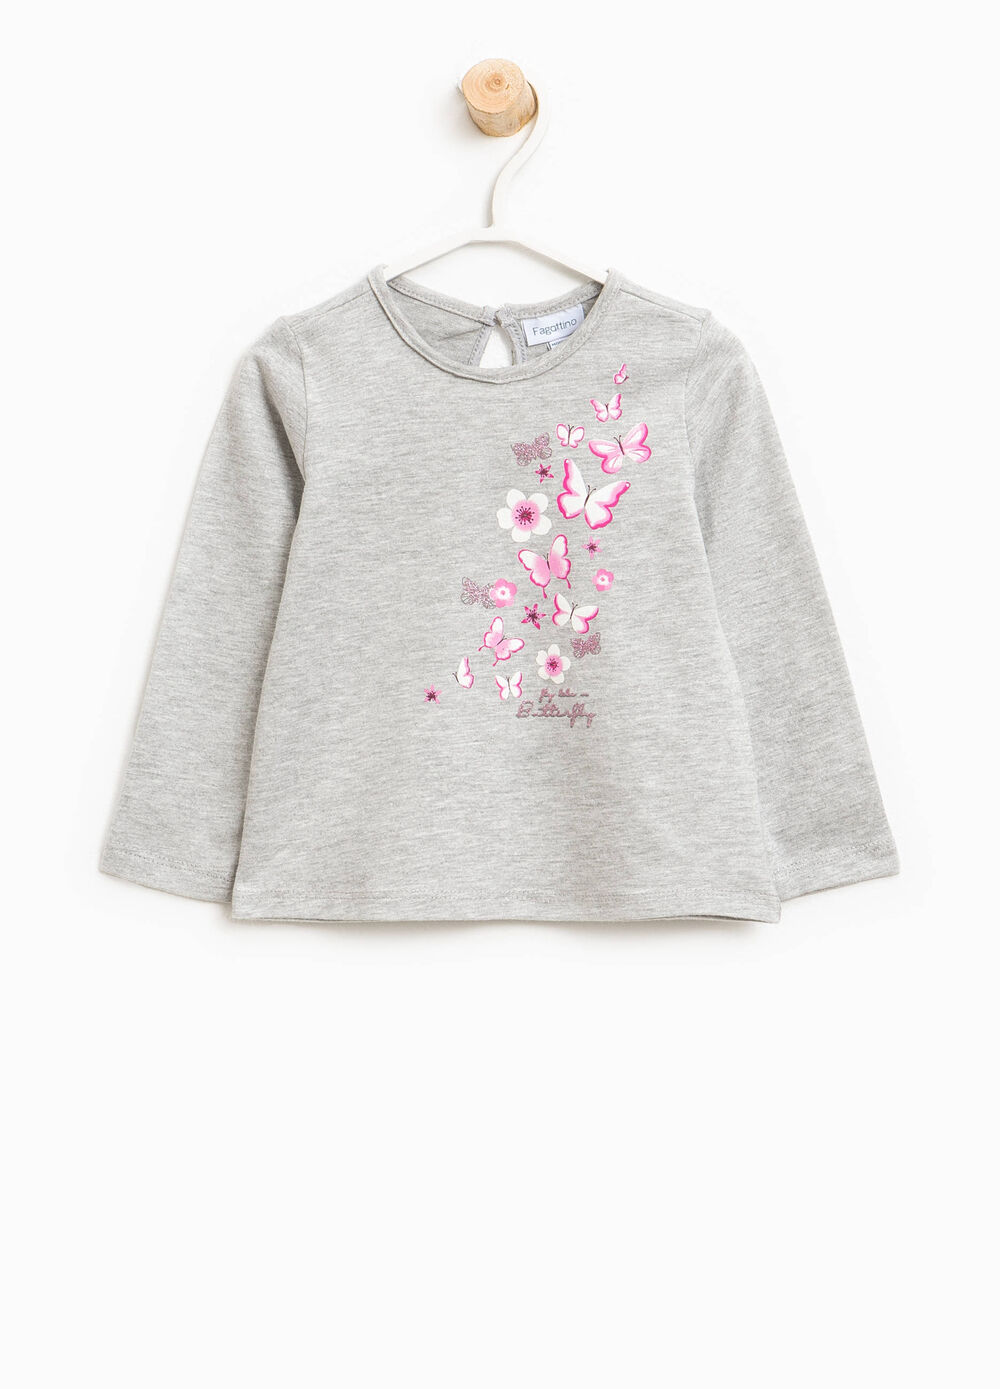 Cotton T-shirt with butterfly print